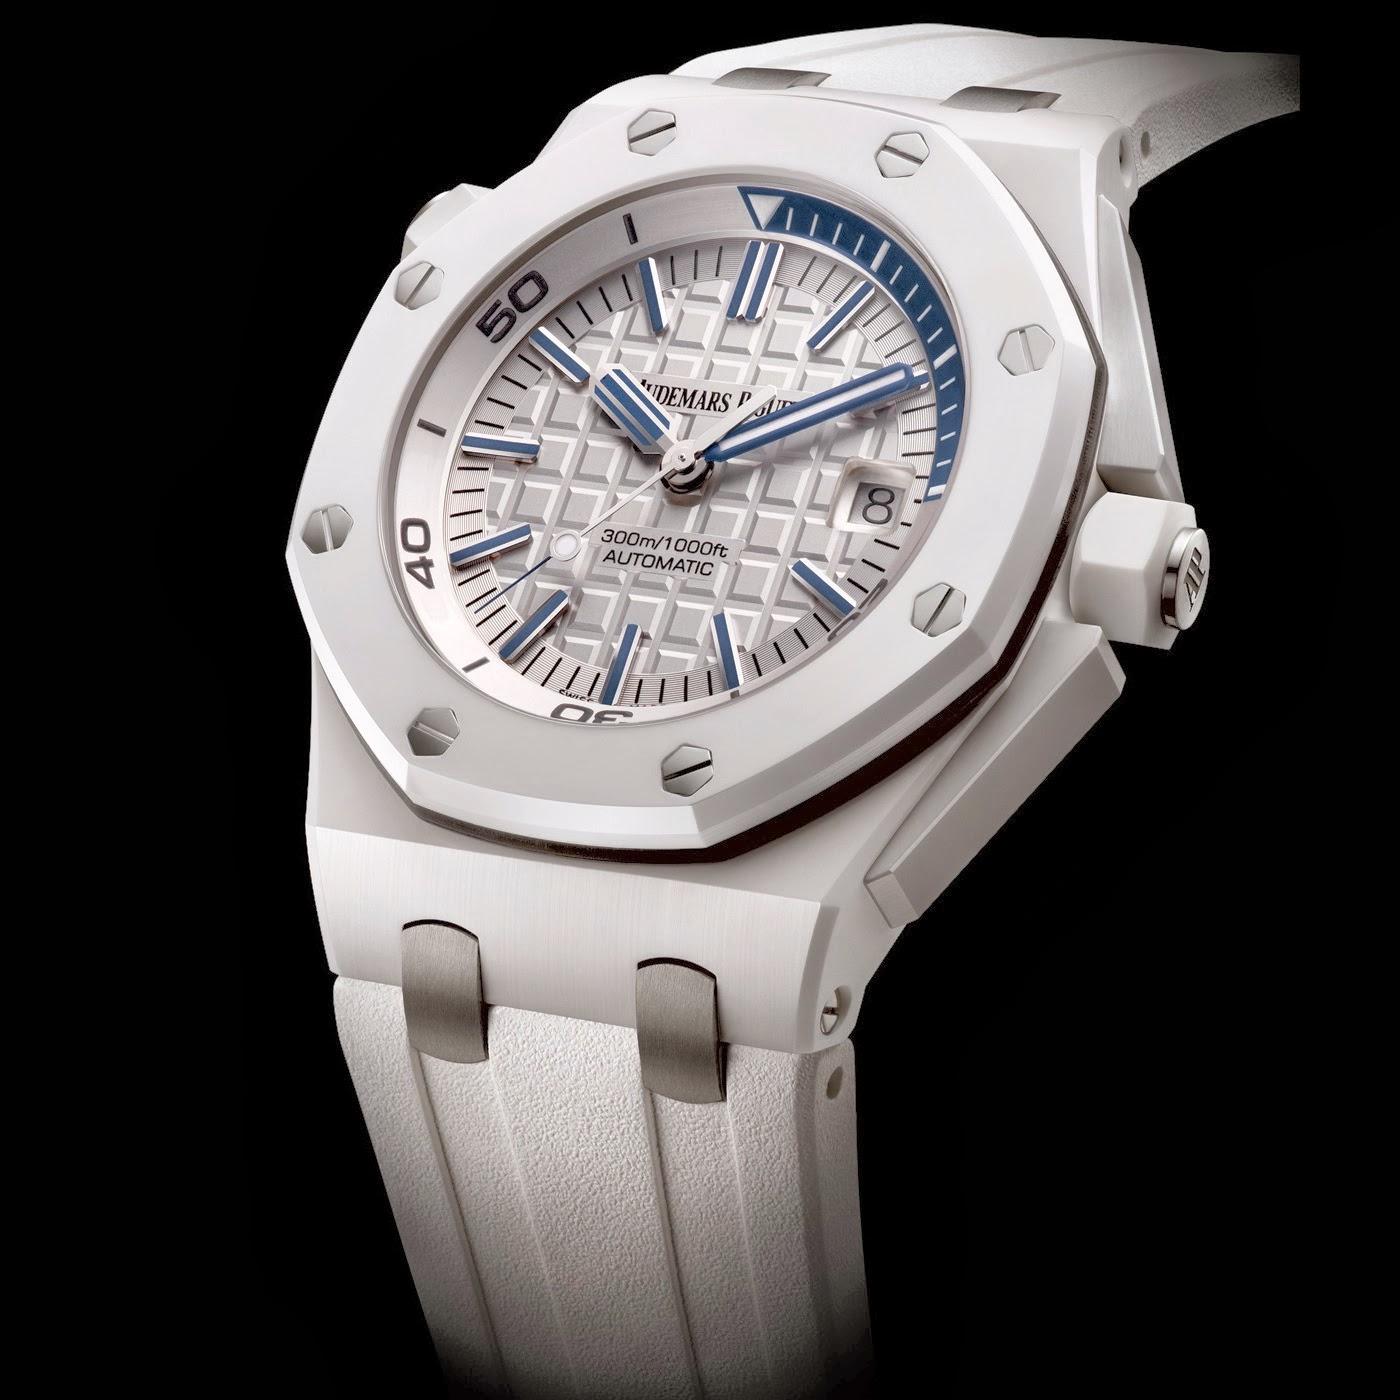 White ceramic audemars piguet royal oak offshore diver replica watch